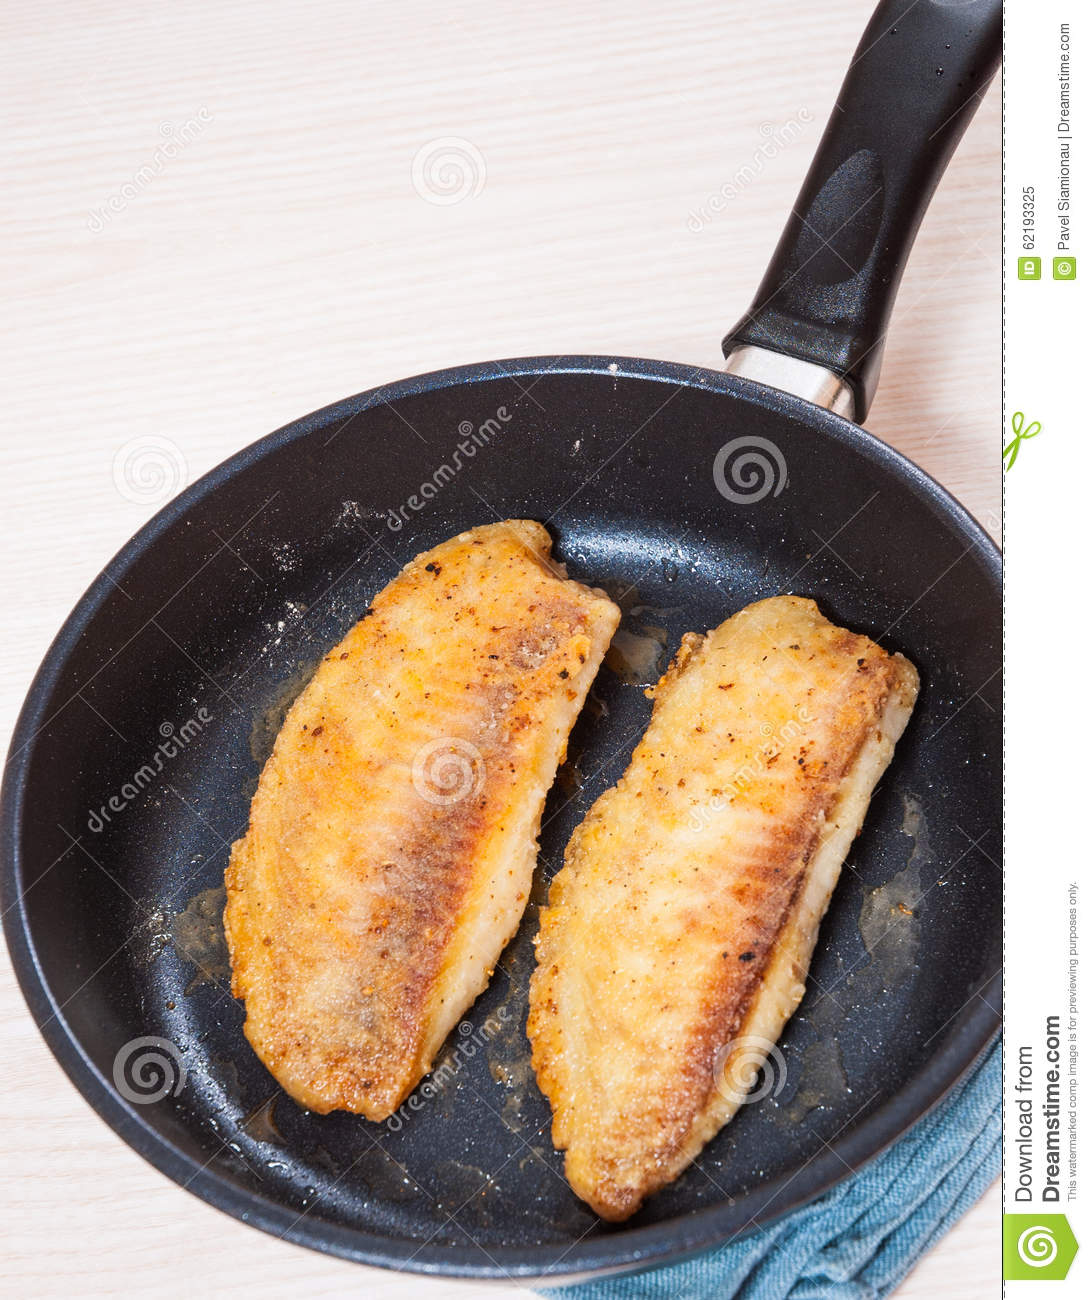 how to cook fish in a frying pan